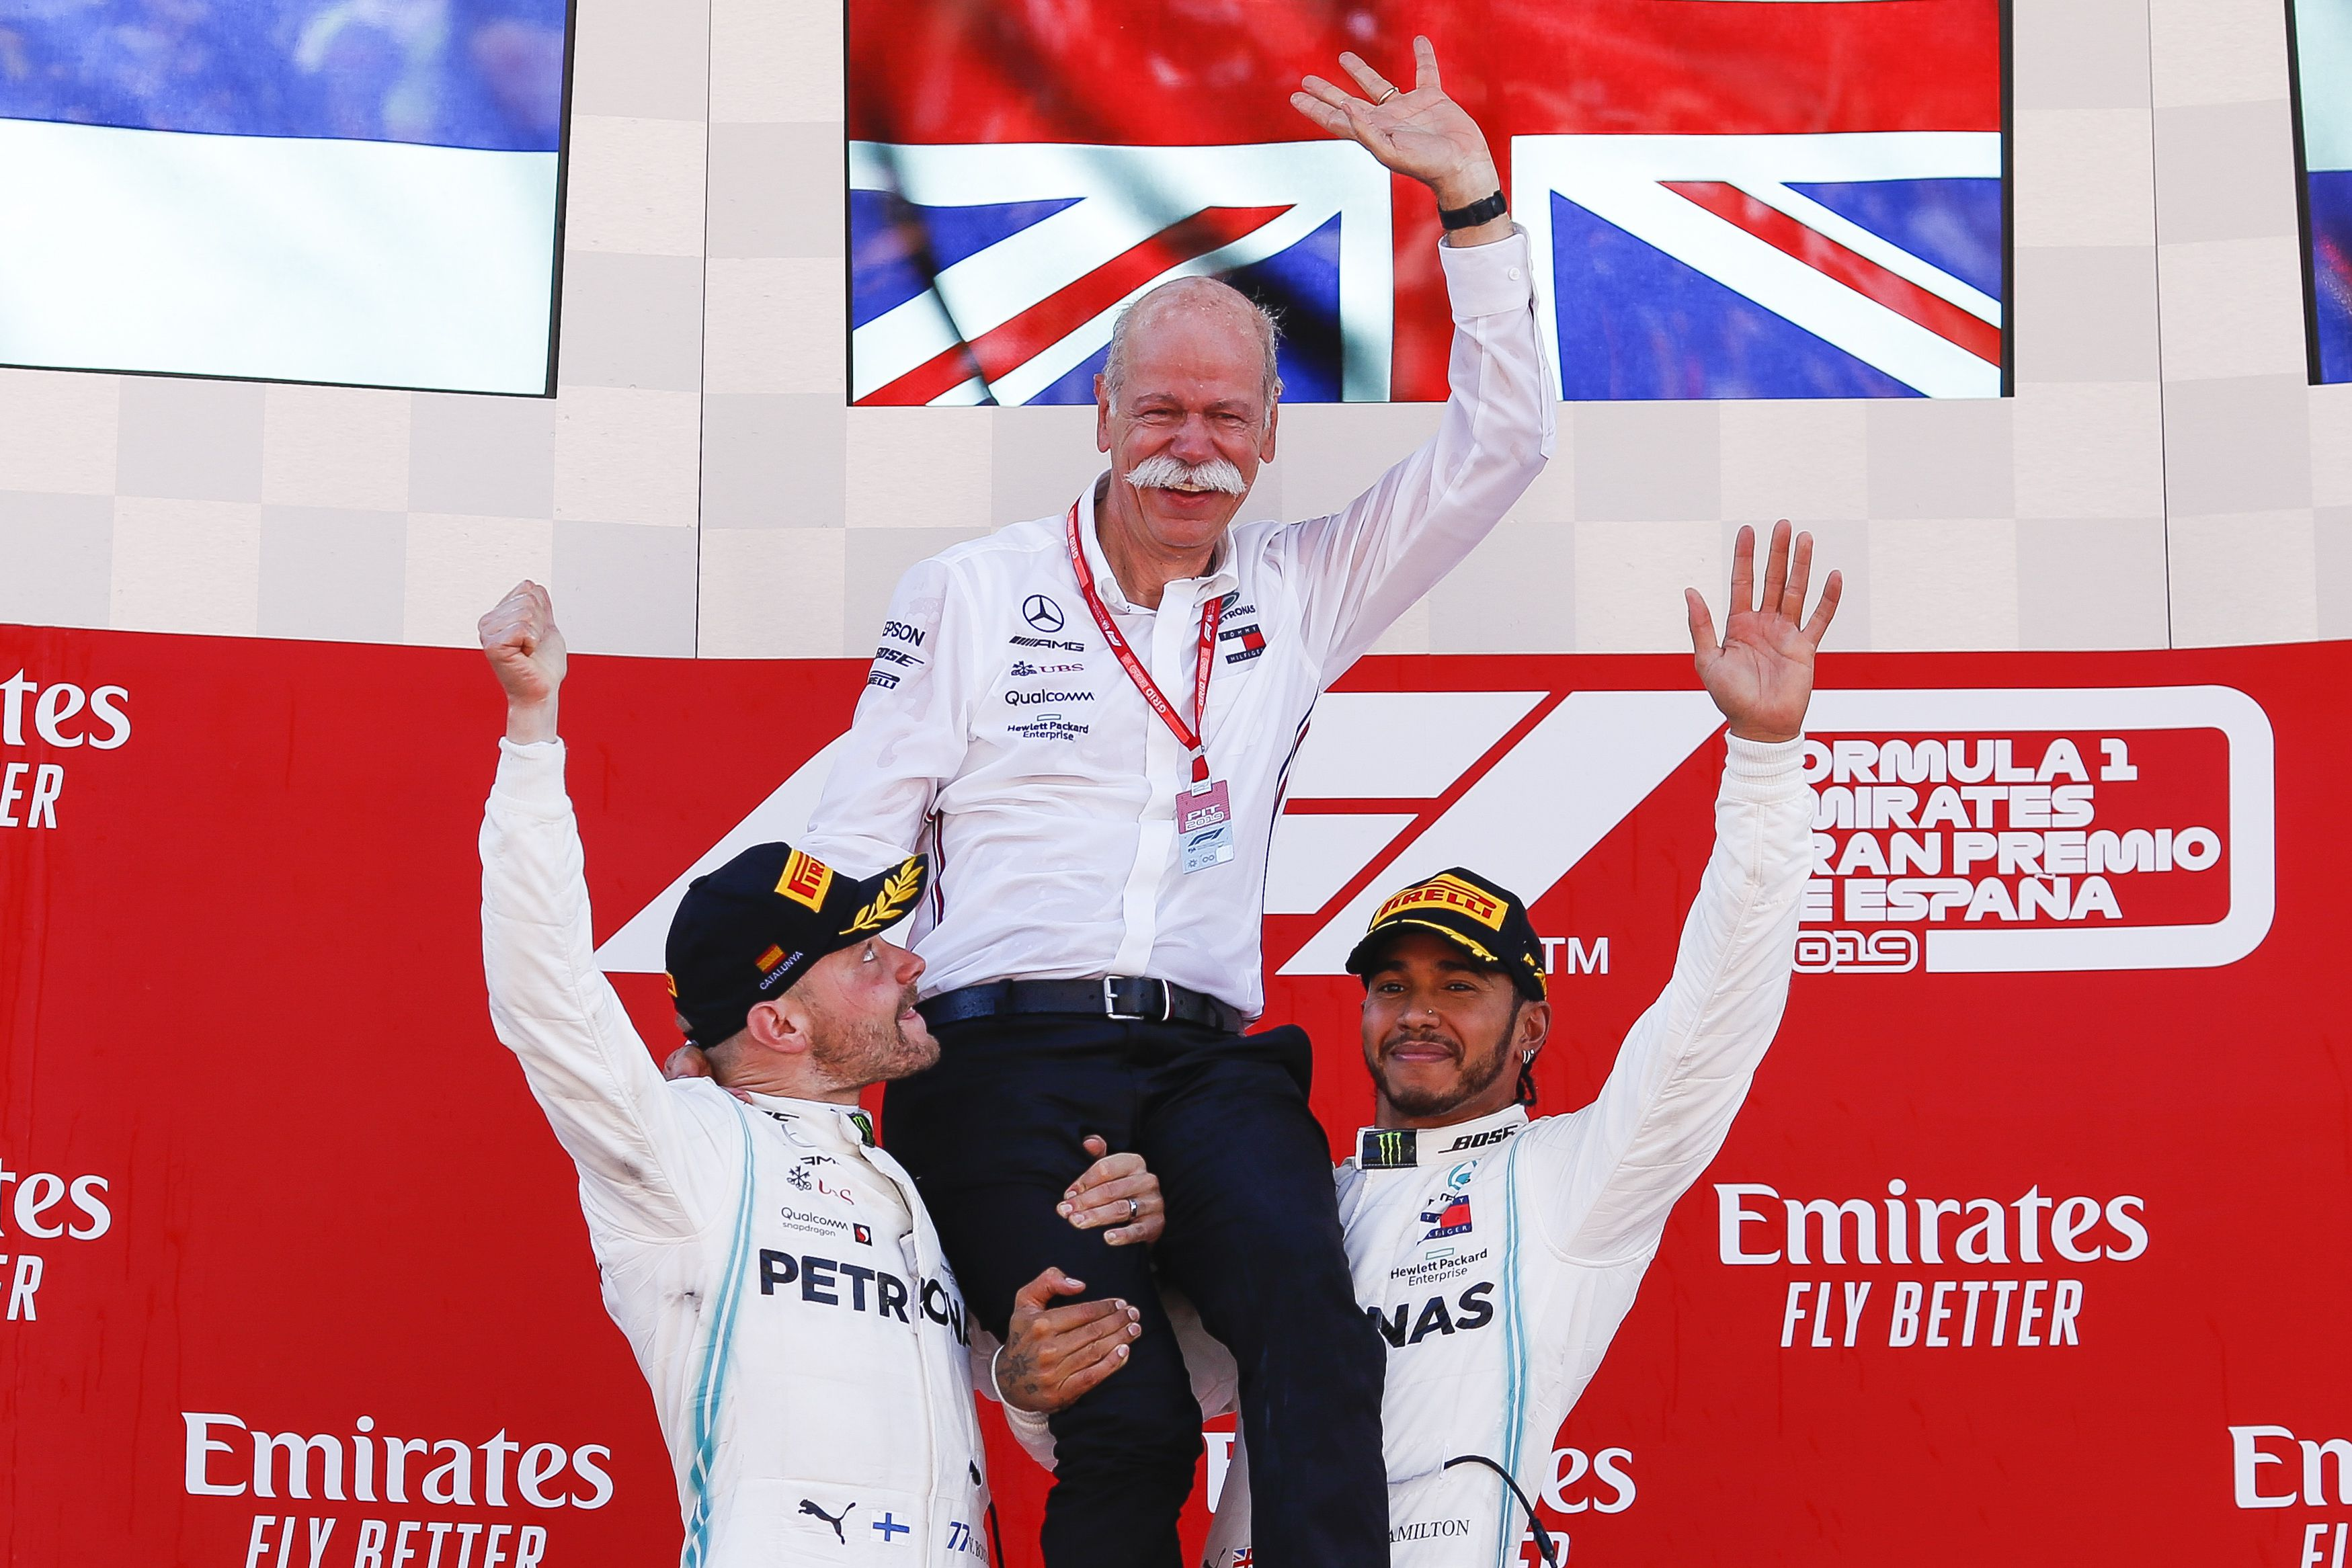 The Mercedes team celebrates yet another win